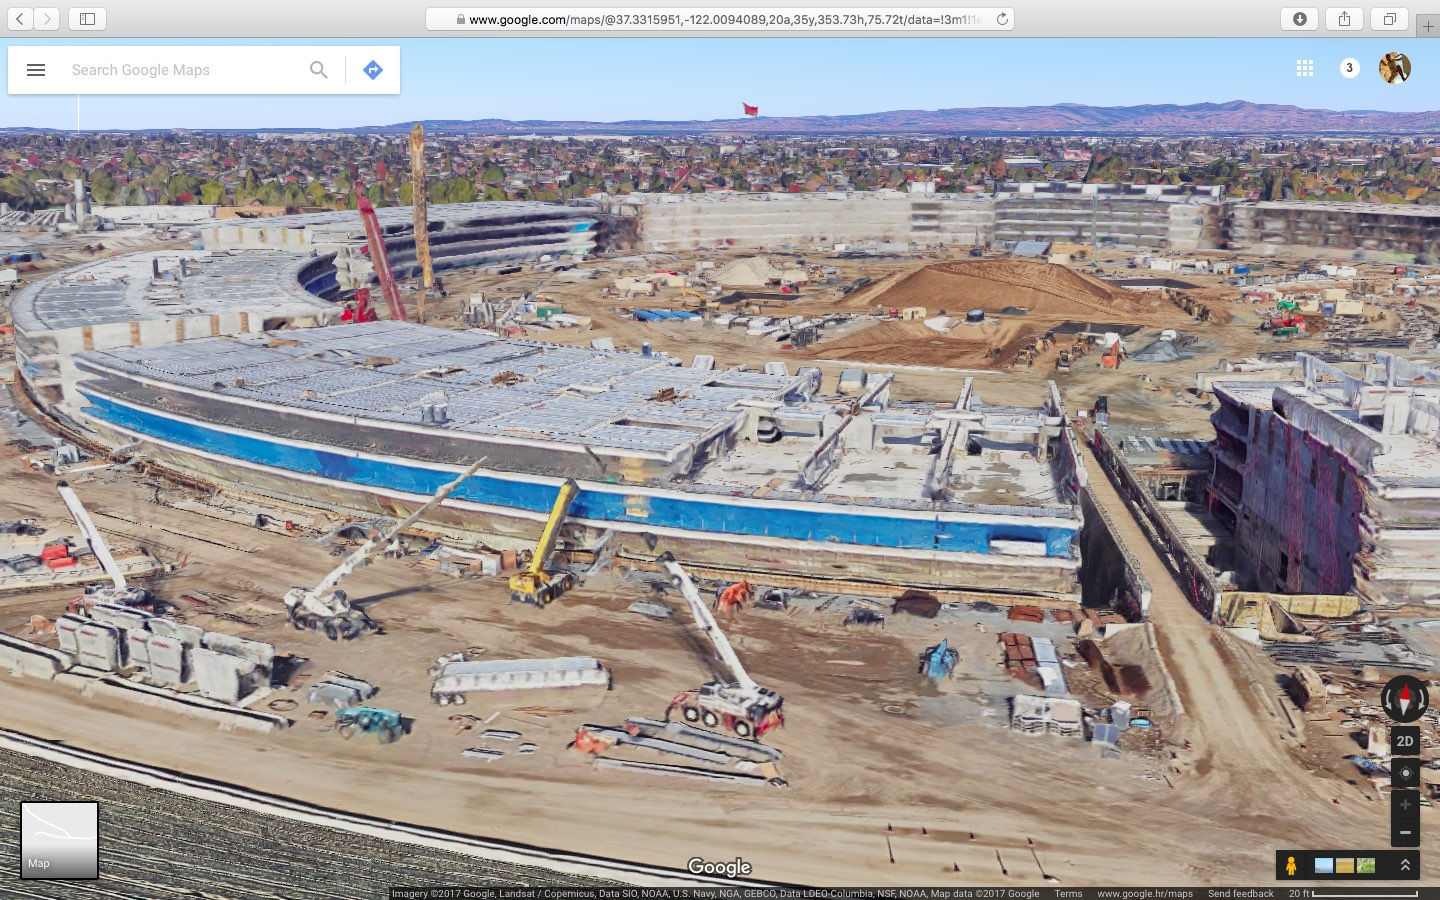 Google Maps gains 3D imagery of Apple Park on google maps via satellite, google air view, google maps sea of galilee, google maps pacific northwest, google maps hybrid mode, google maps watsonville, google maps glitches, google maps navigation, google my home aerial view, google maps allentown pennsylvania, google maps etobicoke, google maps bike trails, google street view, google maps road map, google maps earth, google maps southeast united states, google satellite home search, google earth home, google satellite united states,